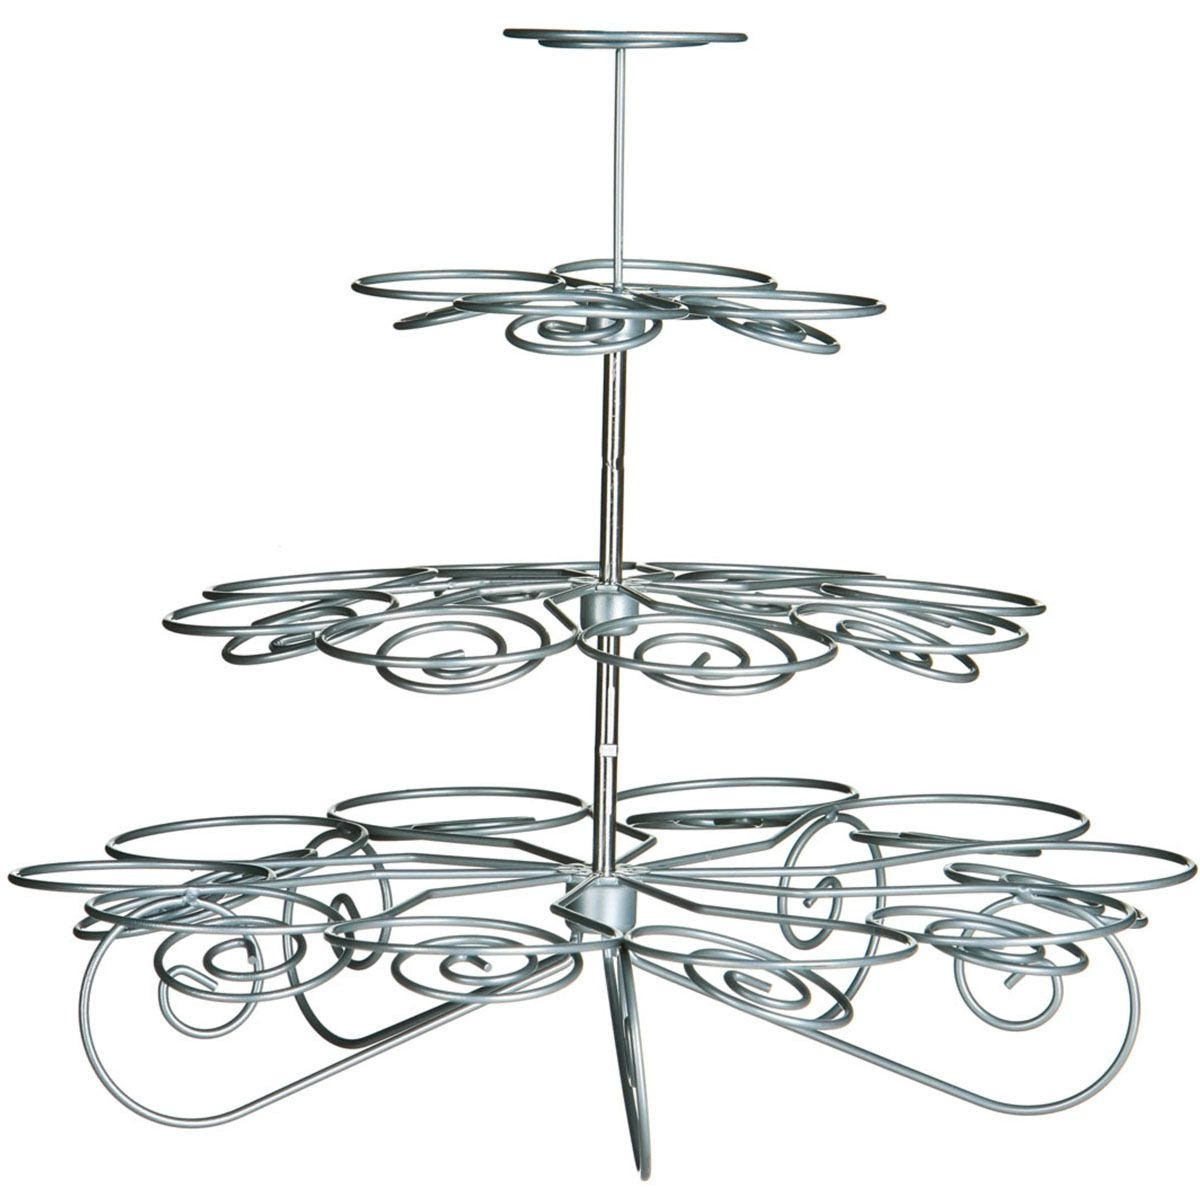 Premier Housewares 4 Tier Cupcake Stand - Silver